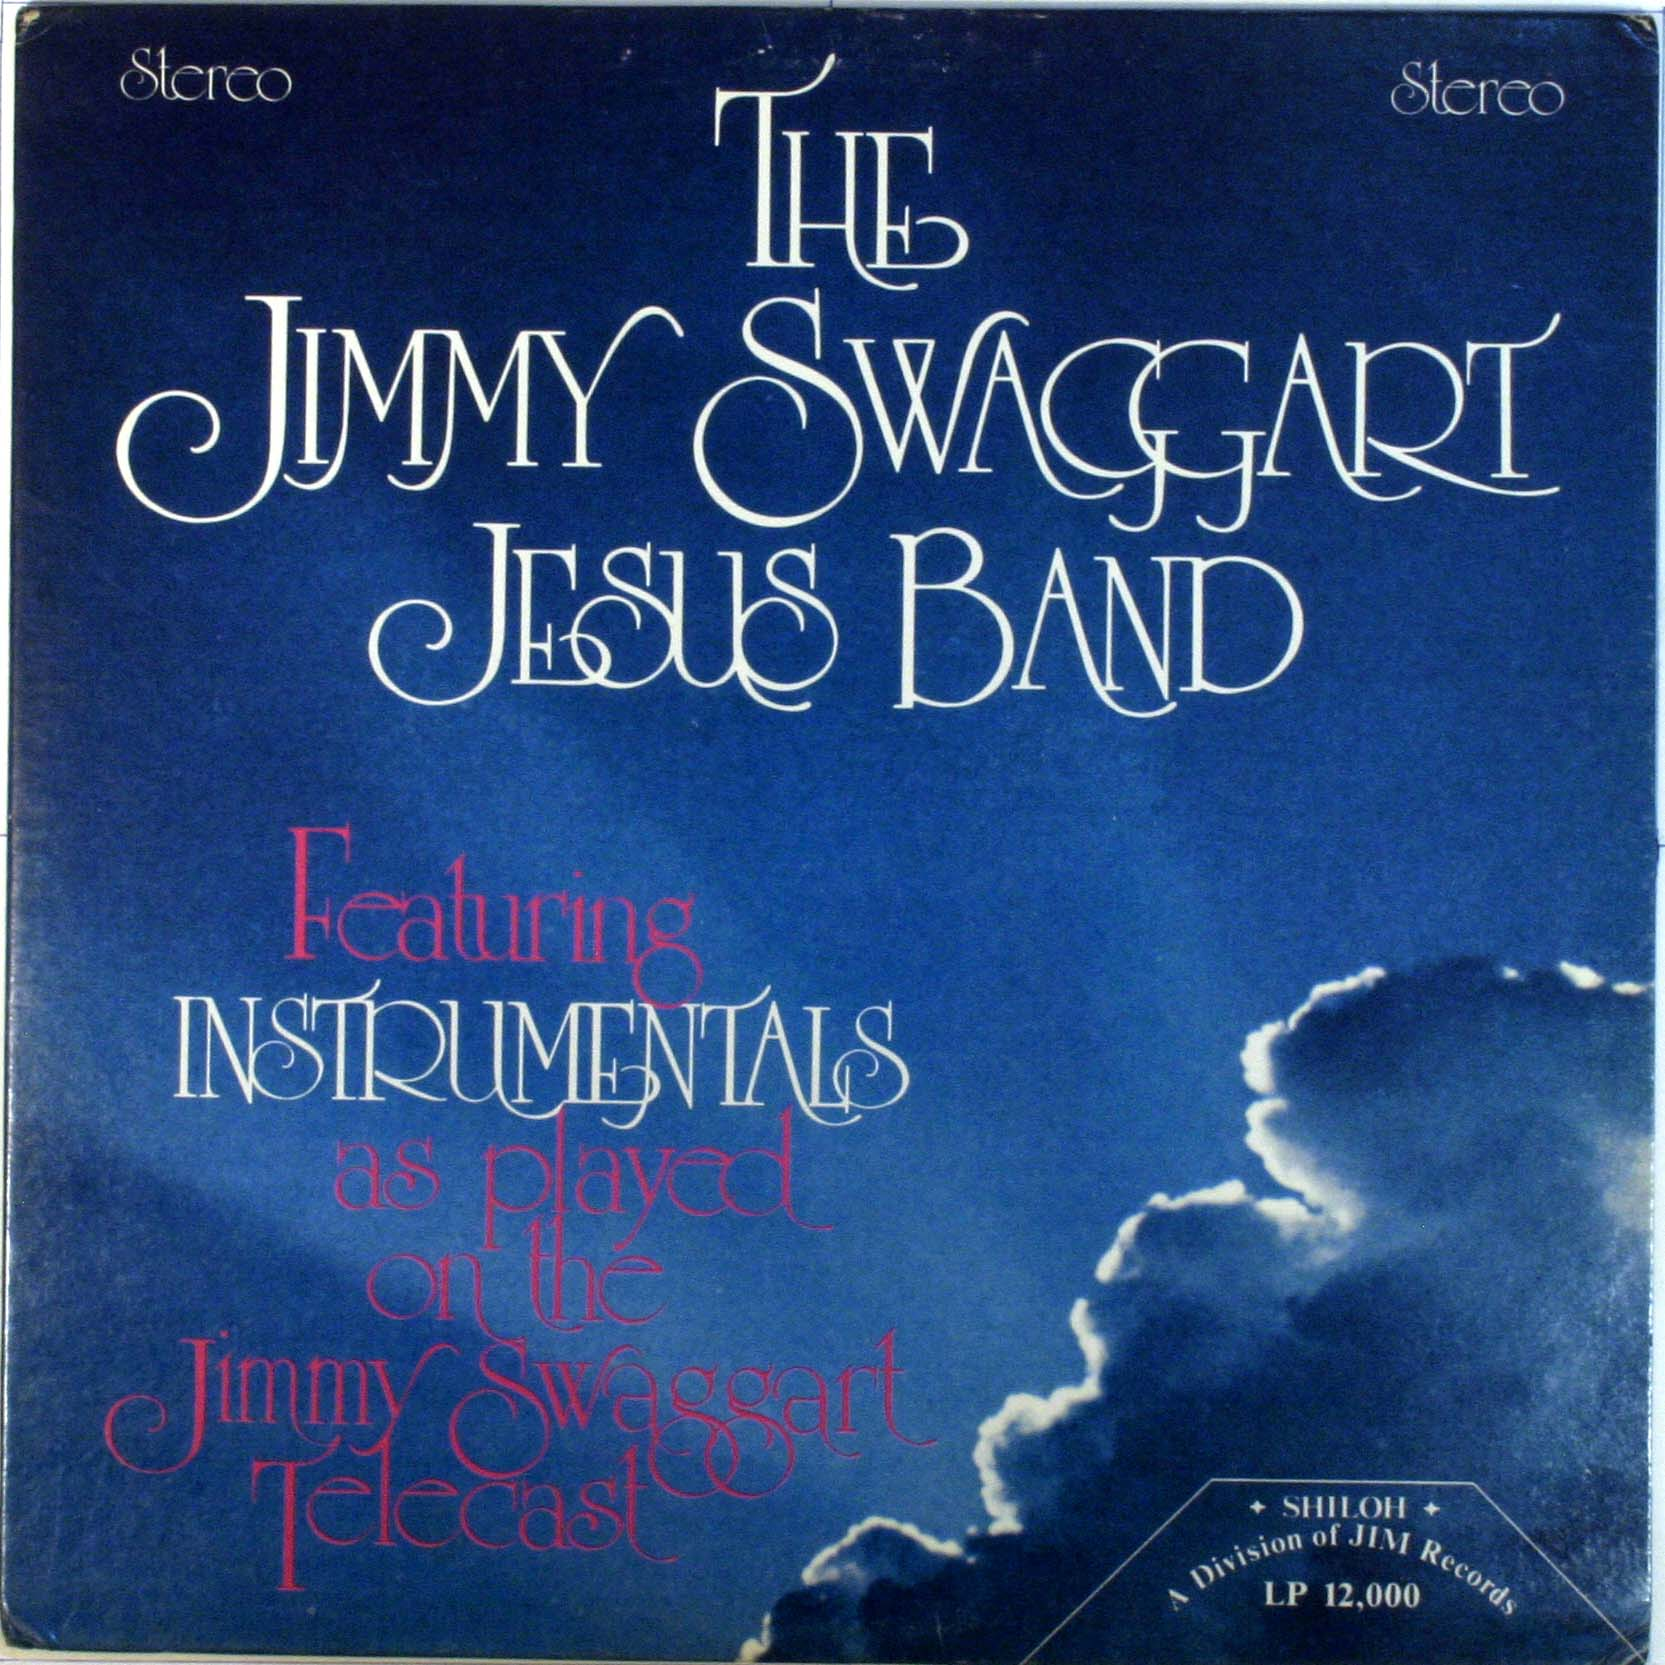 The Jimmy Swaggart Christmas Spirit